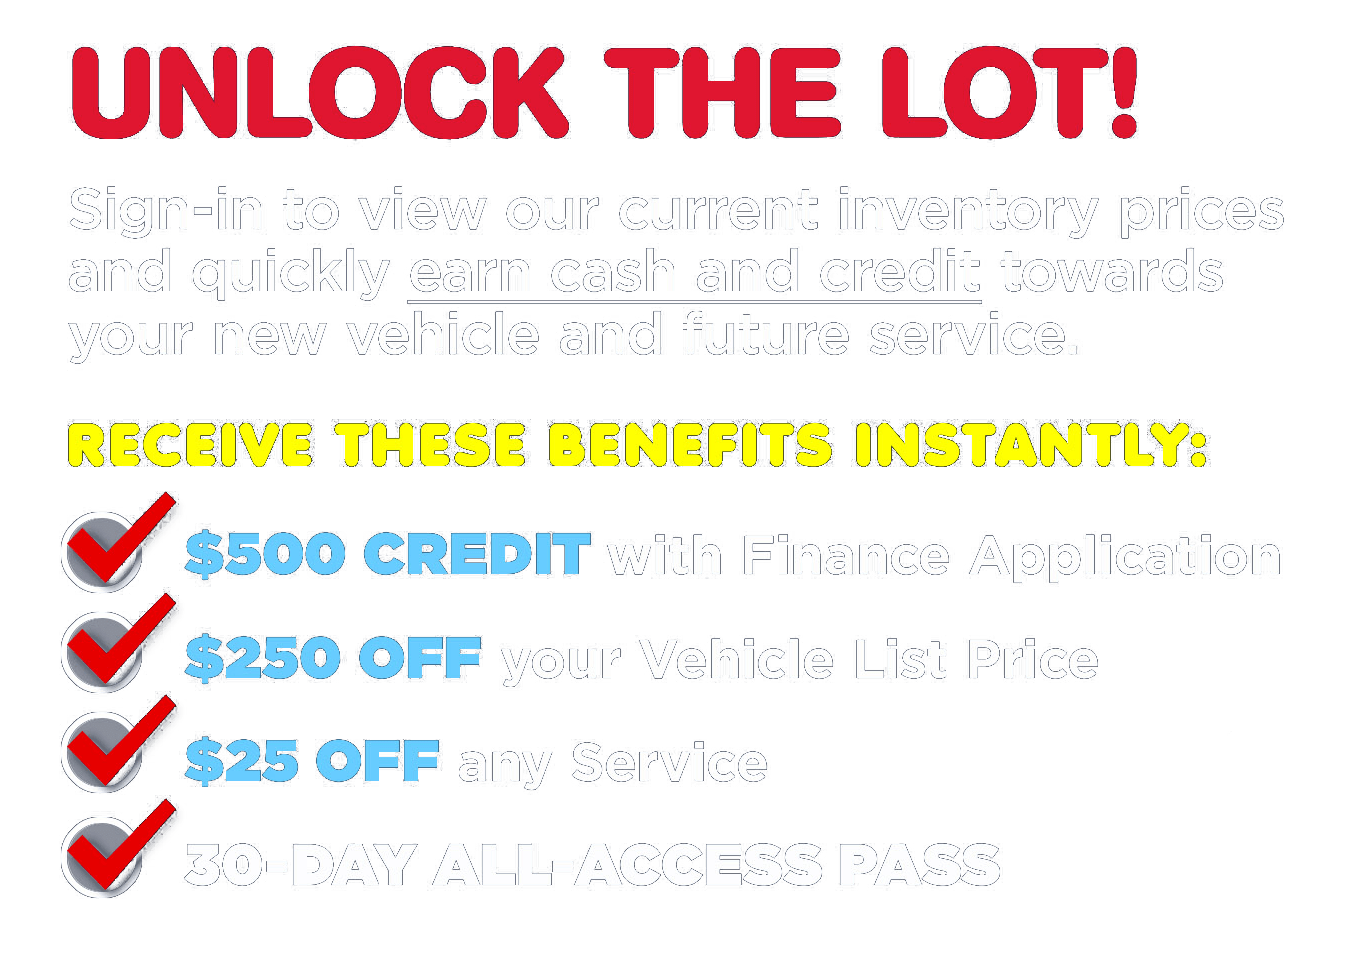 unlock-the-lot